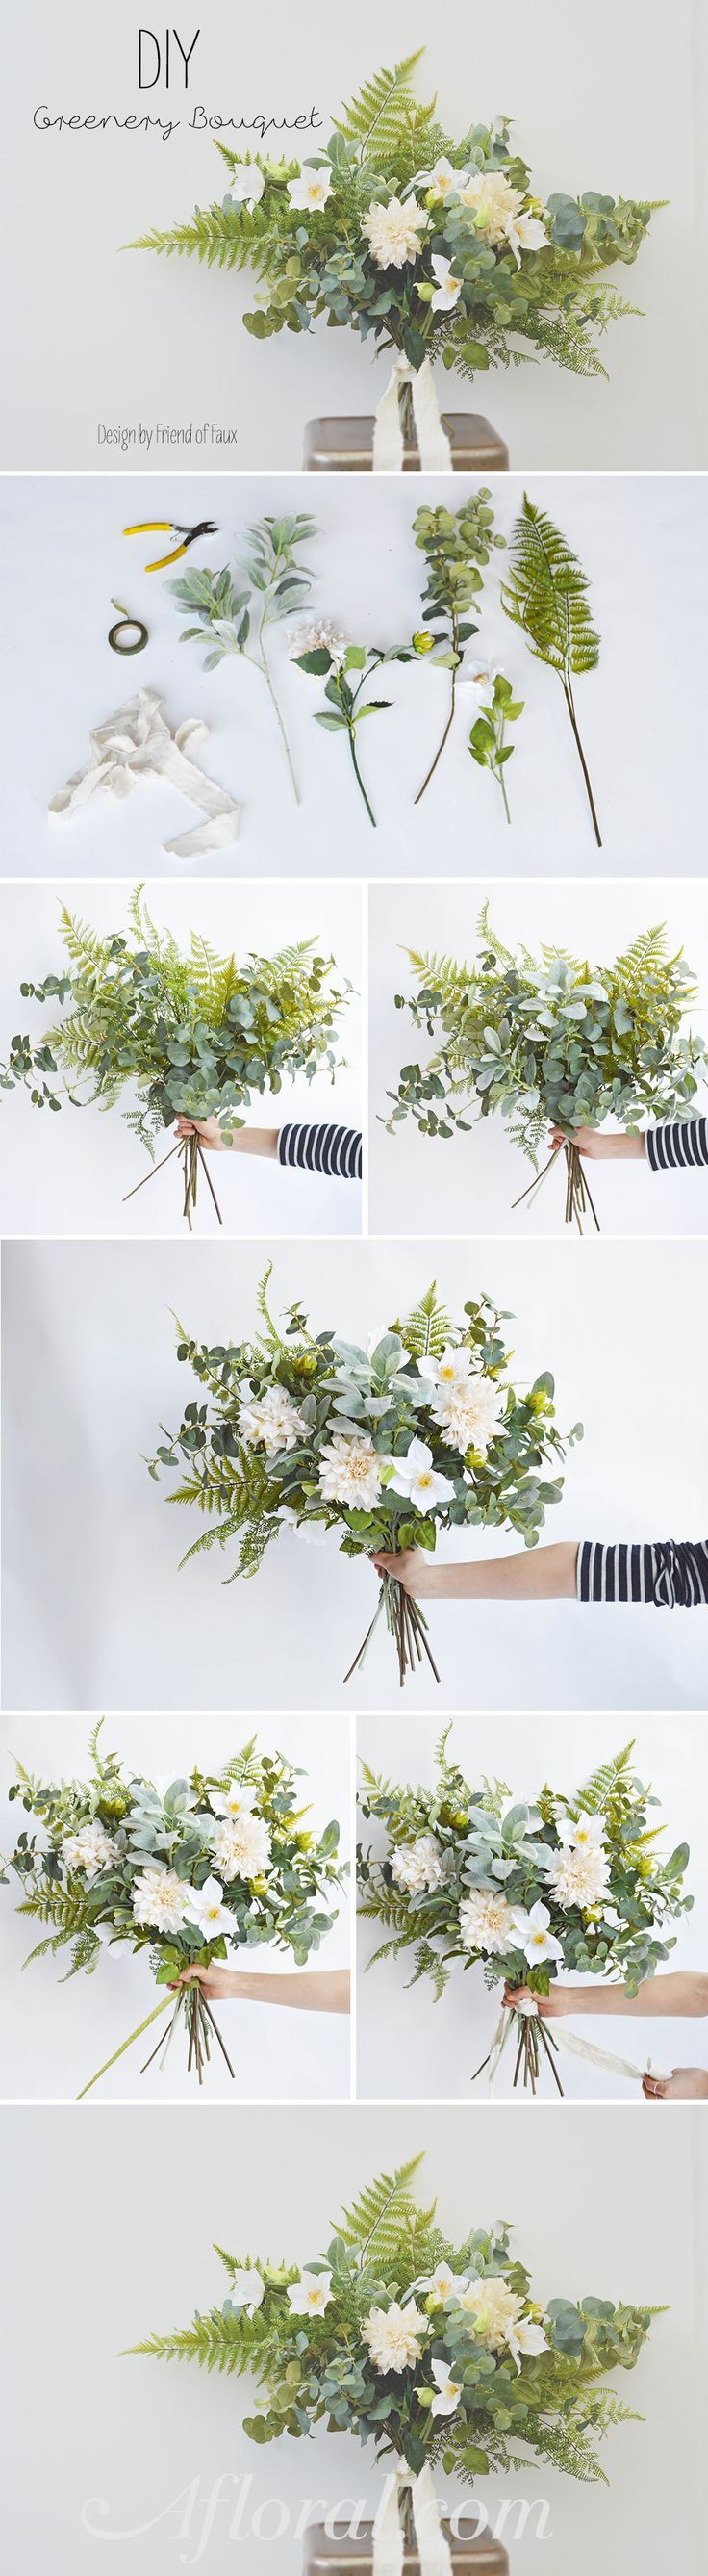 Make your own wedding bouquets ahead of time with this simple DIY by Friend Of Faux using faux greenery and flowers from http://afloral.com! #fauxflowers Design by Friend of Faux